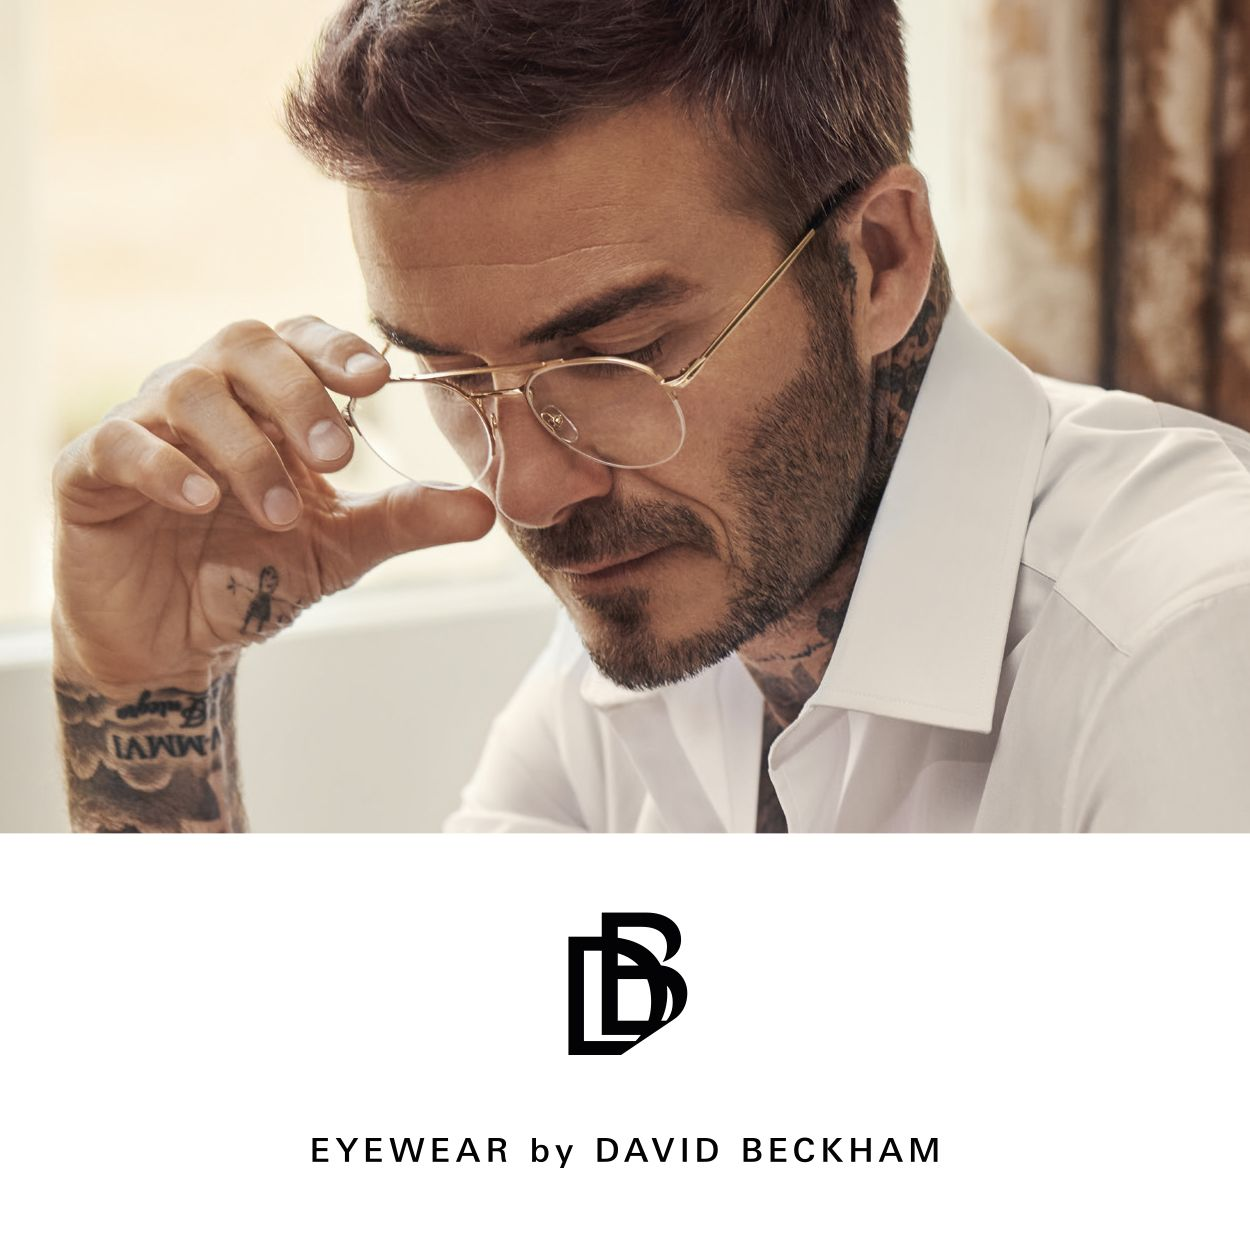 Eyewear by David Beckham